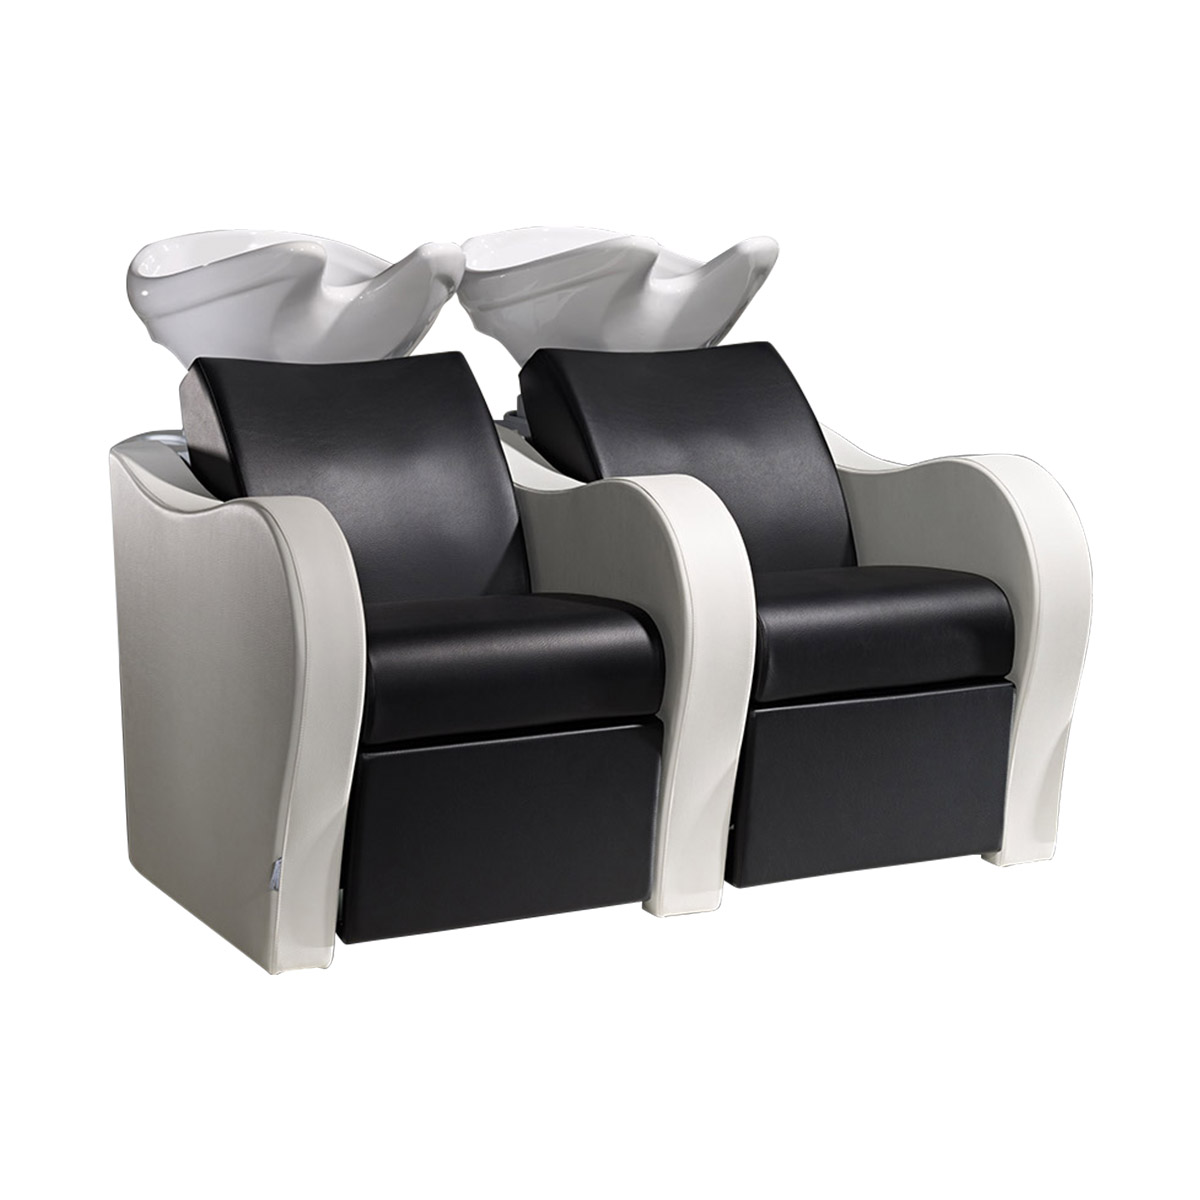 Luxury Sofa Salon Sink and 2 Chair Combo by Salon Ambience  main product image